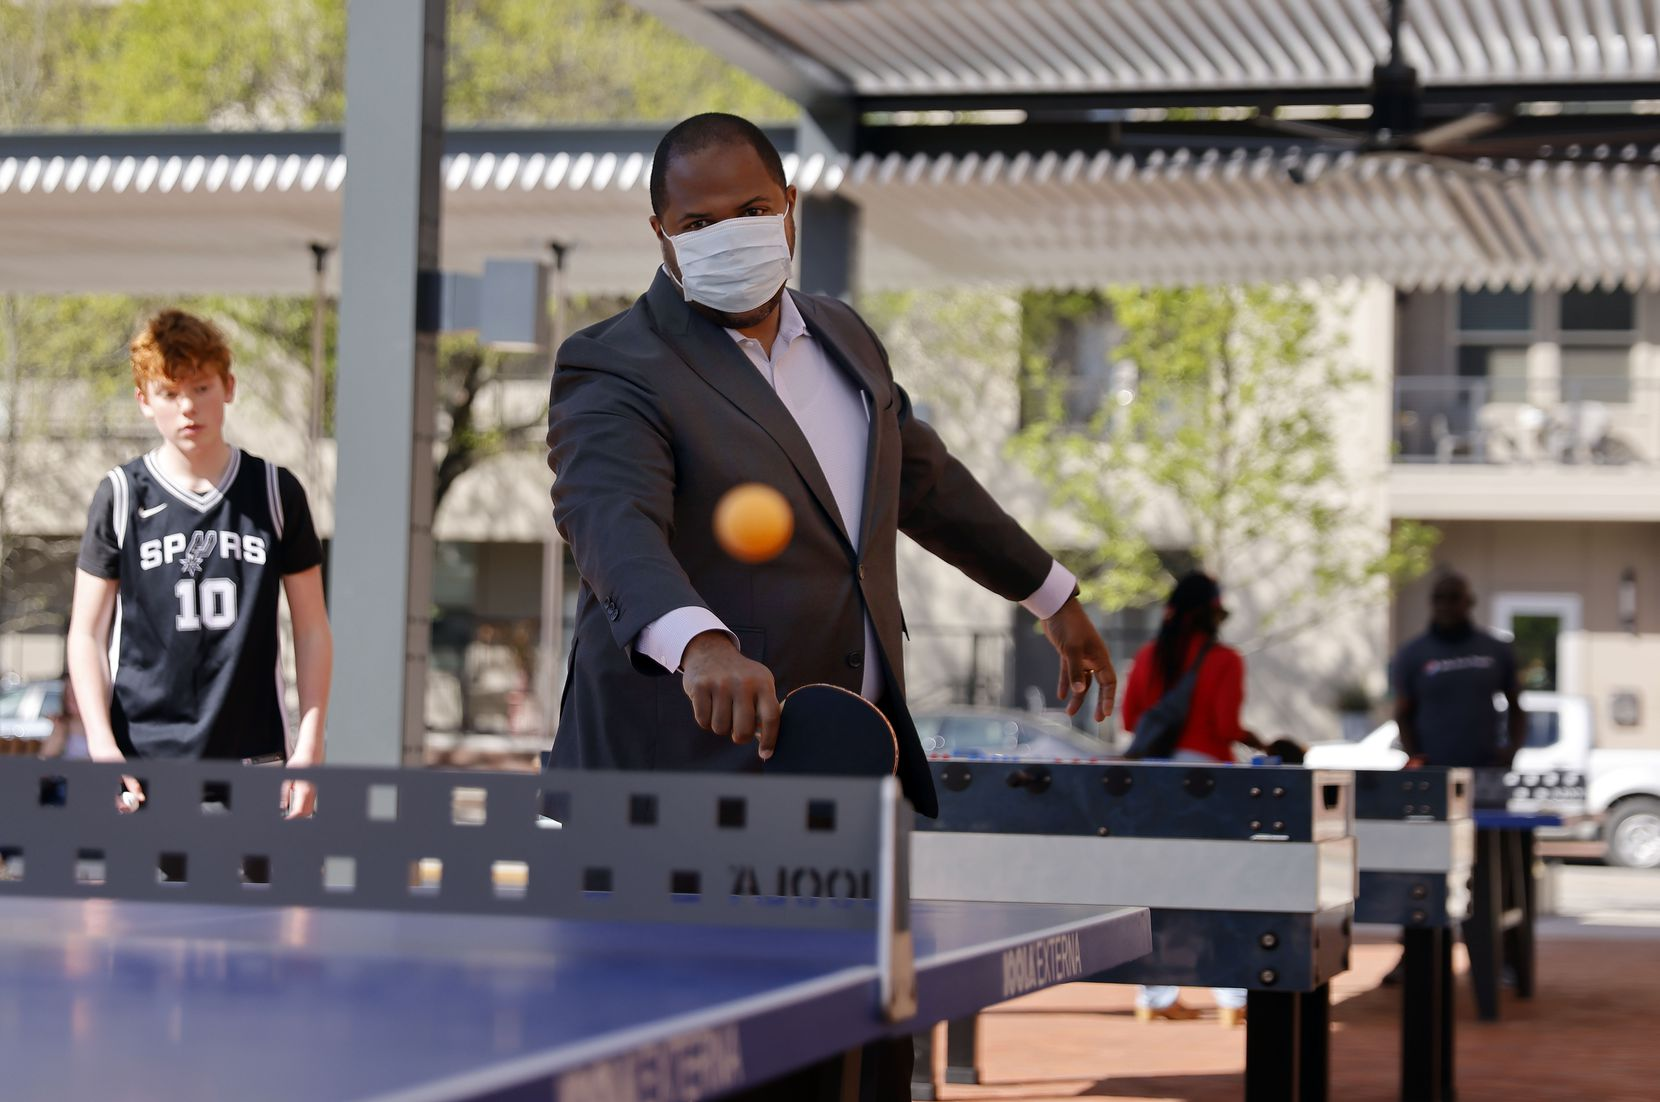 Dallas Mayor Eric Johnson picked up a paddle and got into a competitive match of table tennis after the West End Square ribbon-cutting in downtown Dallas on March 26. The mayor says the lack of face-to-face interaction with Dallas residents has been among the hardest parts of leading through the pandemic.